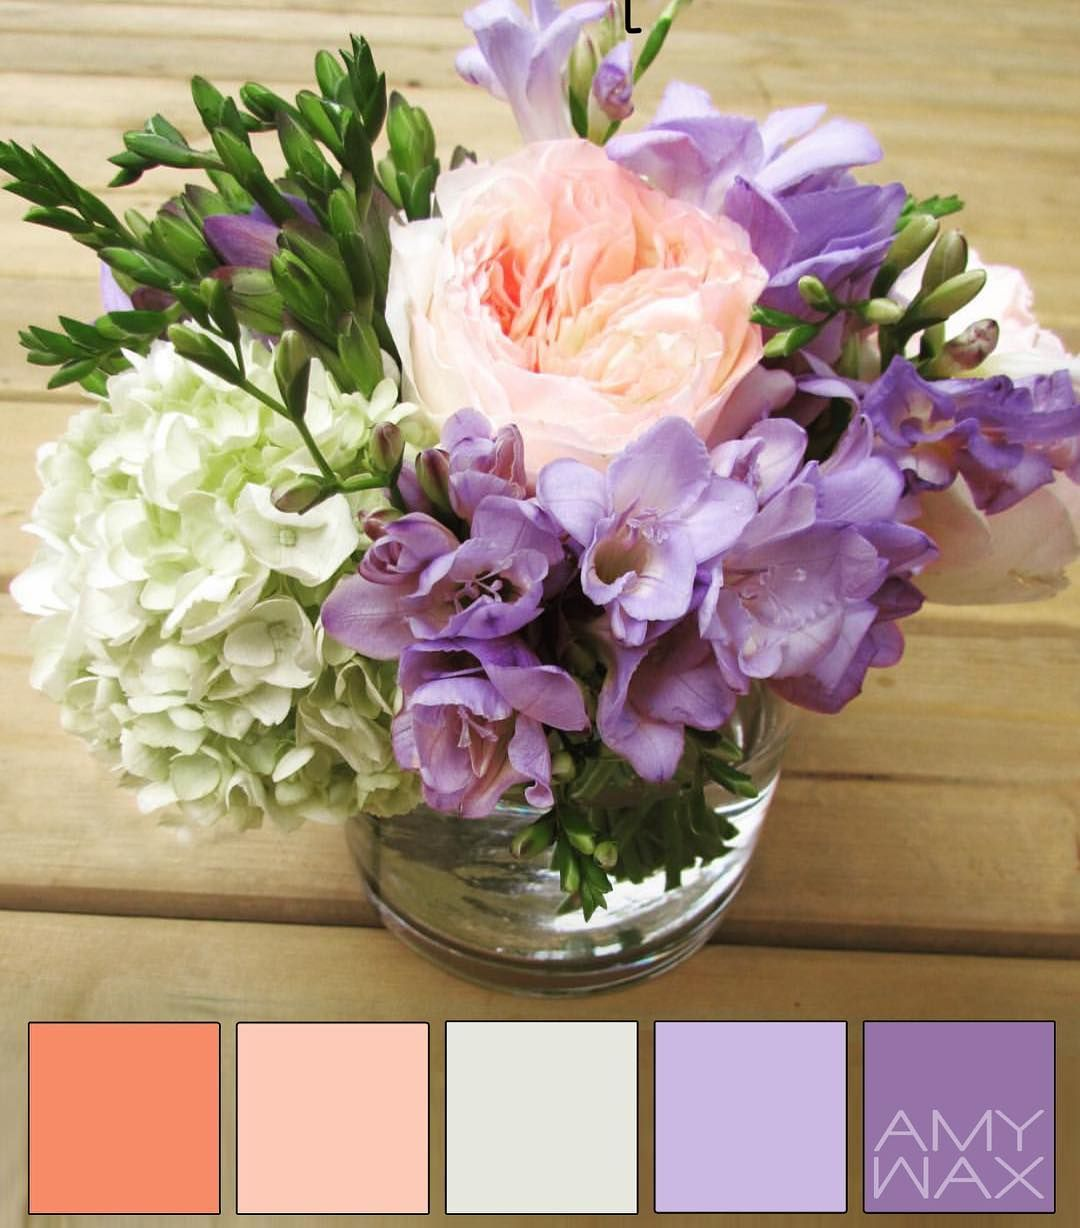 Who doesn't enjoy a little #color inspiration from time to time. Just sharing some colors to brighten your day. I know I can't wait for Spring to be here; until then I guess these fresh flowers will have to do :)